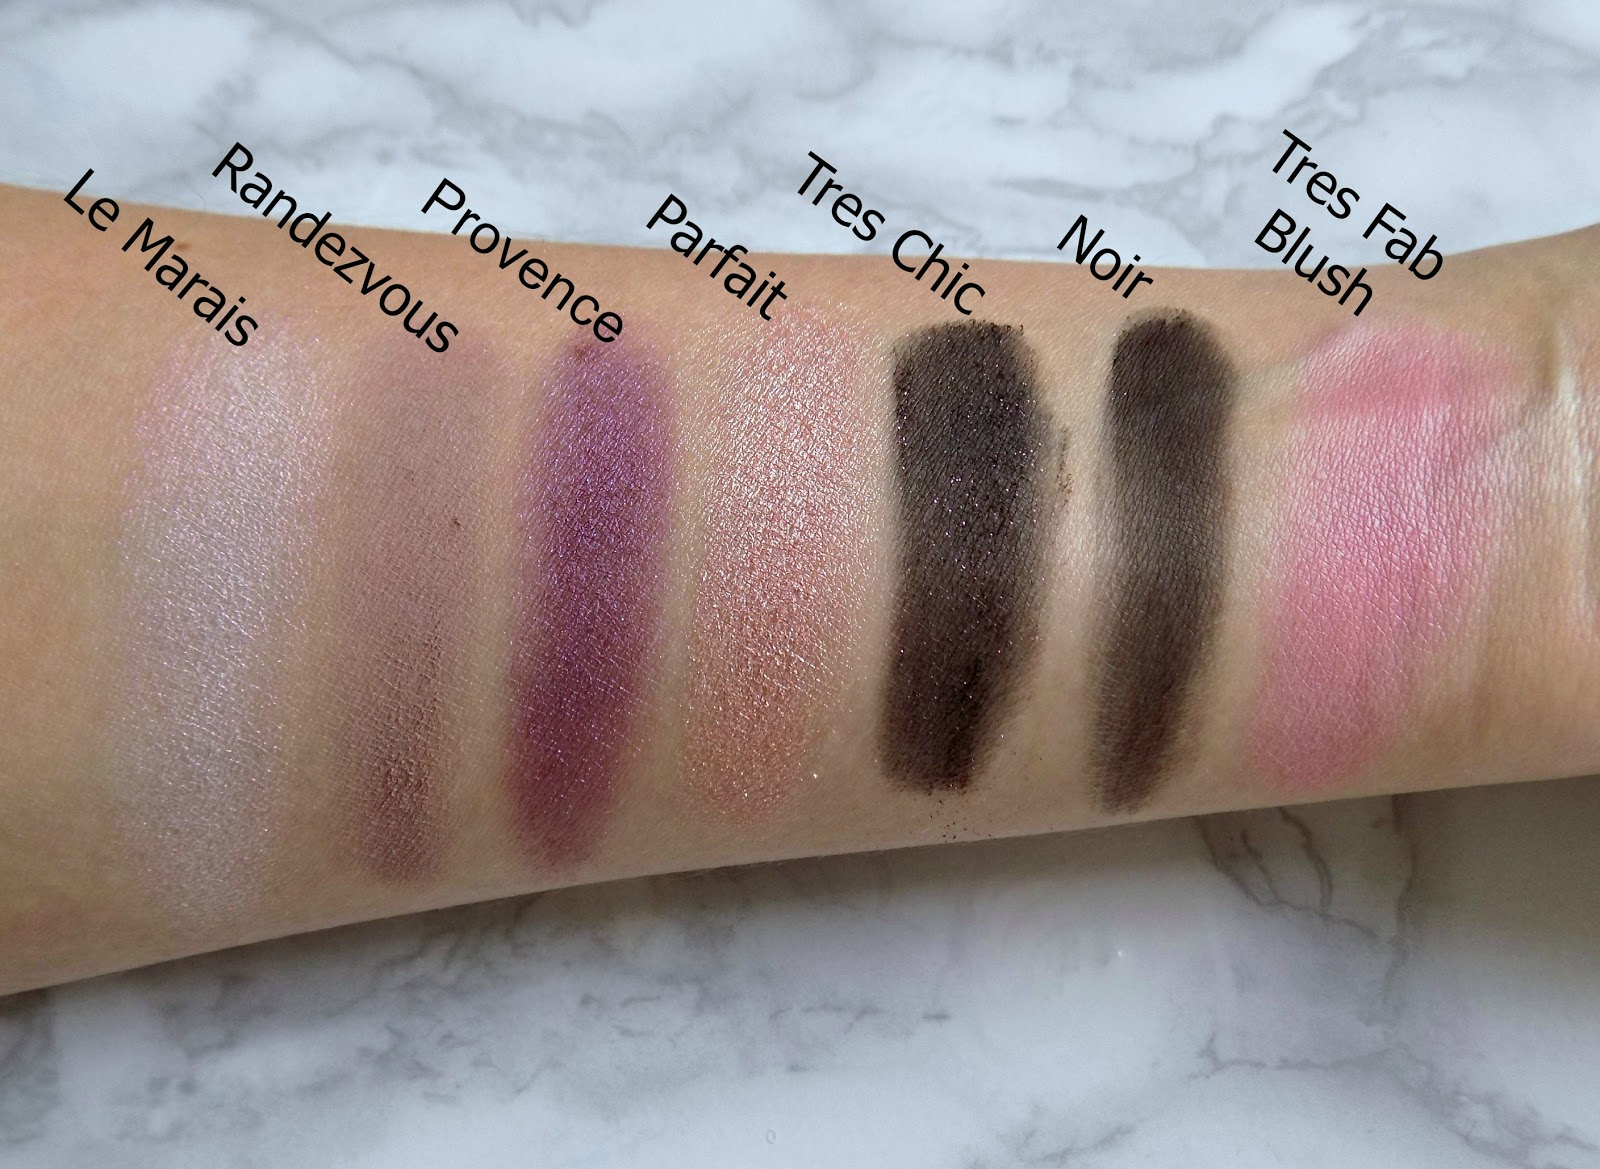 Too Faced 'Le Grand Chateau' Holiday set swatches